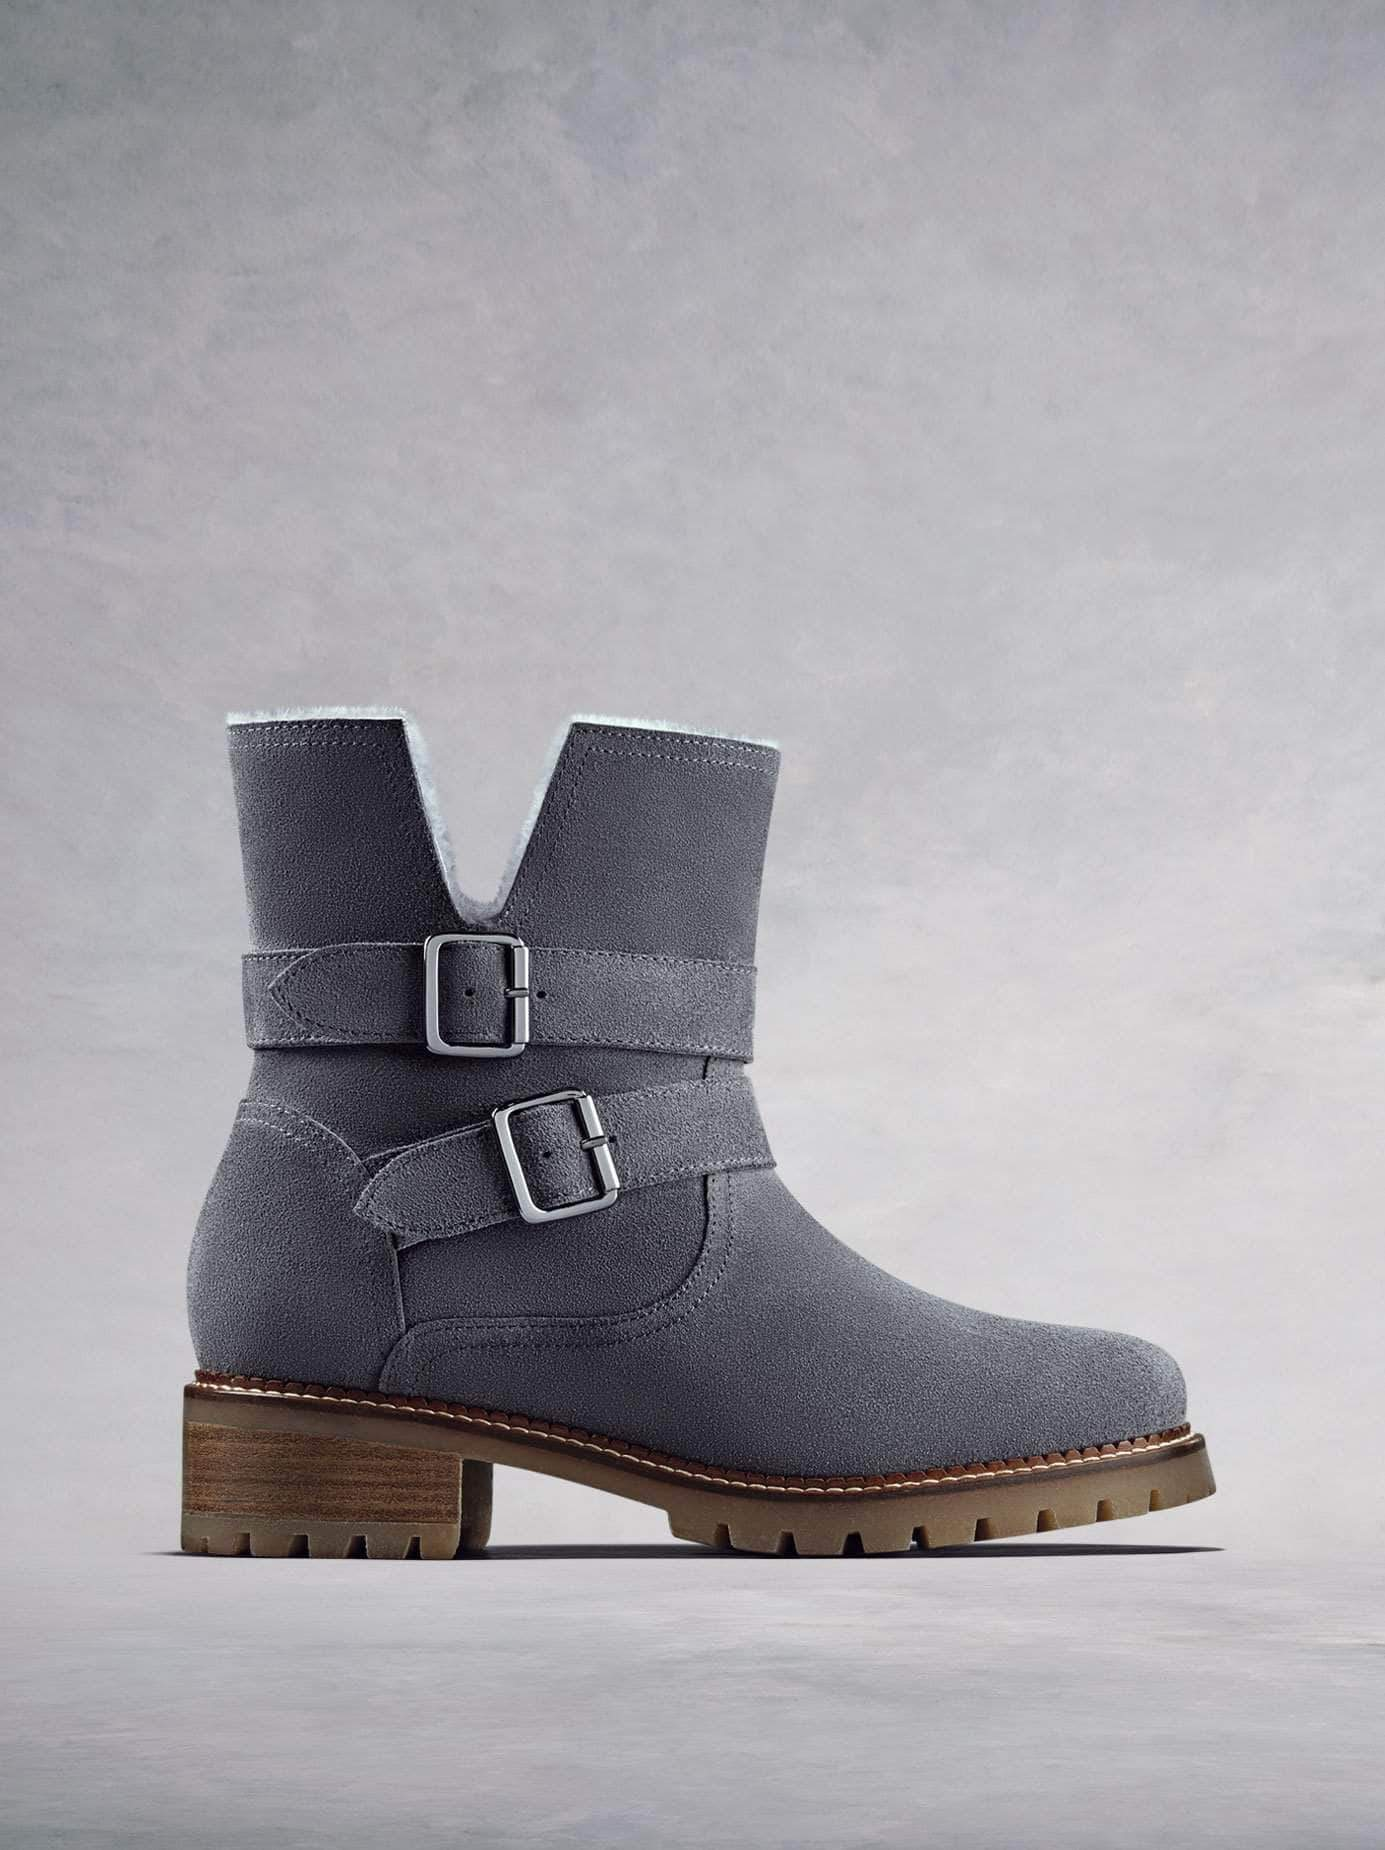 Longleat, our grey suede biker style ankle boot with a heavy tread sole. Available in our standard or wider fit.